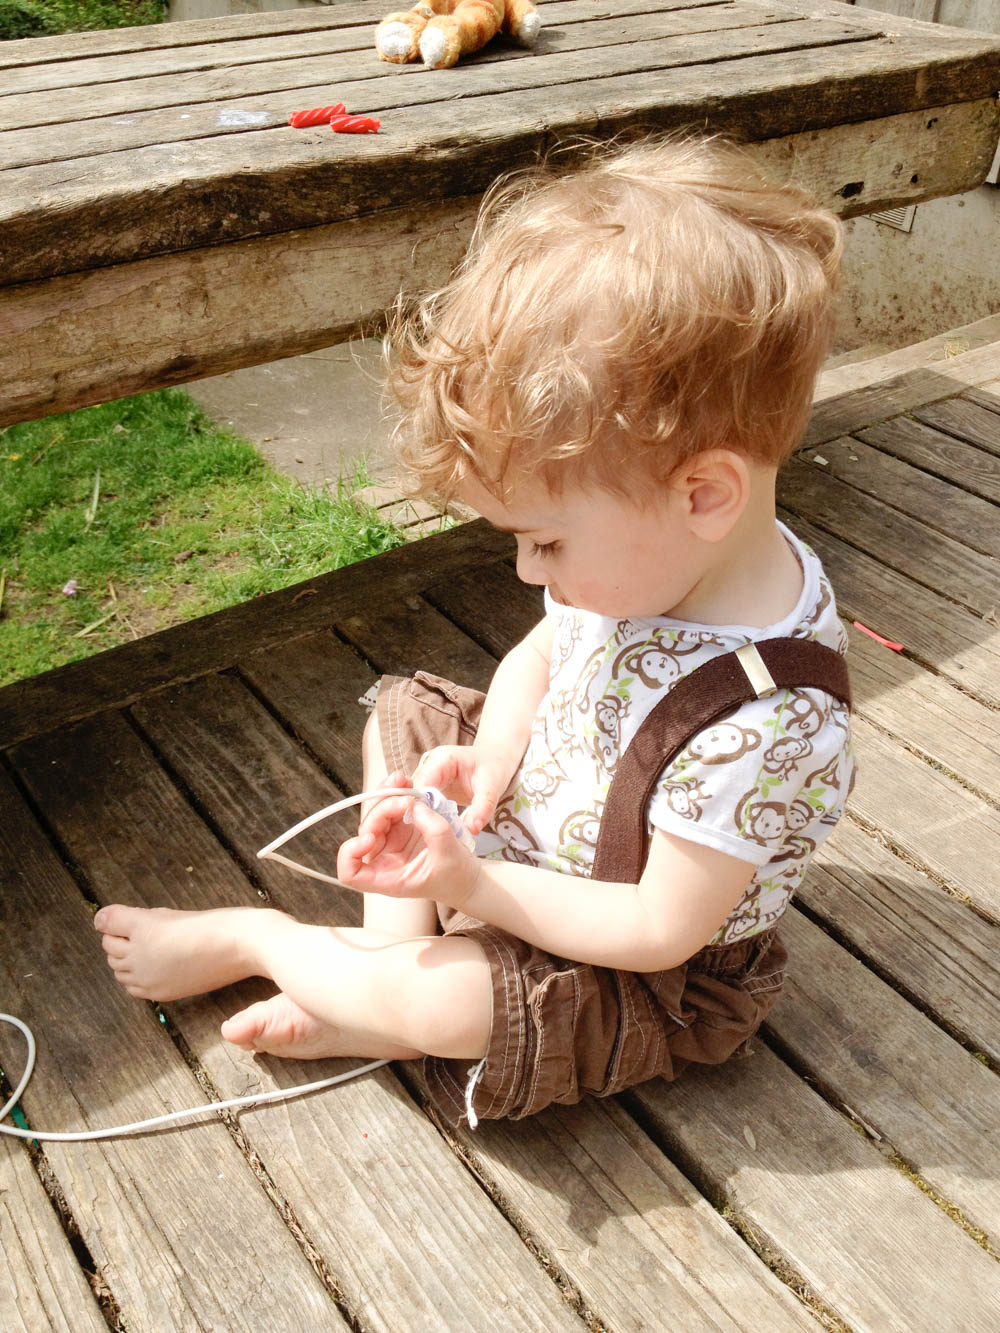 Toddler with g-tube plays outdoors on deck.